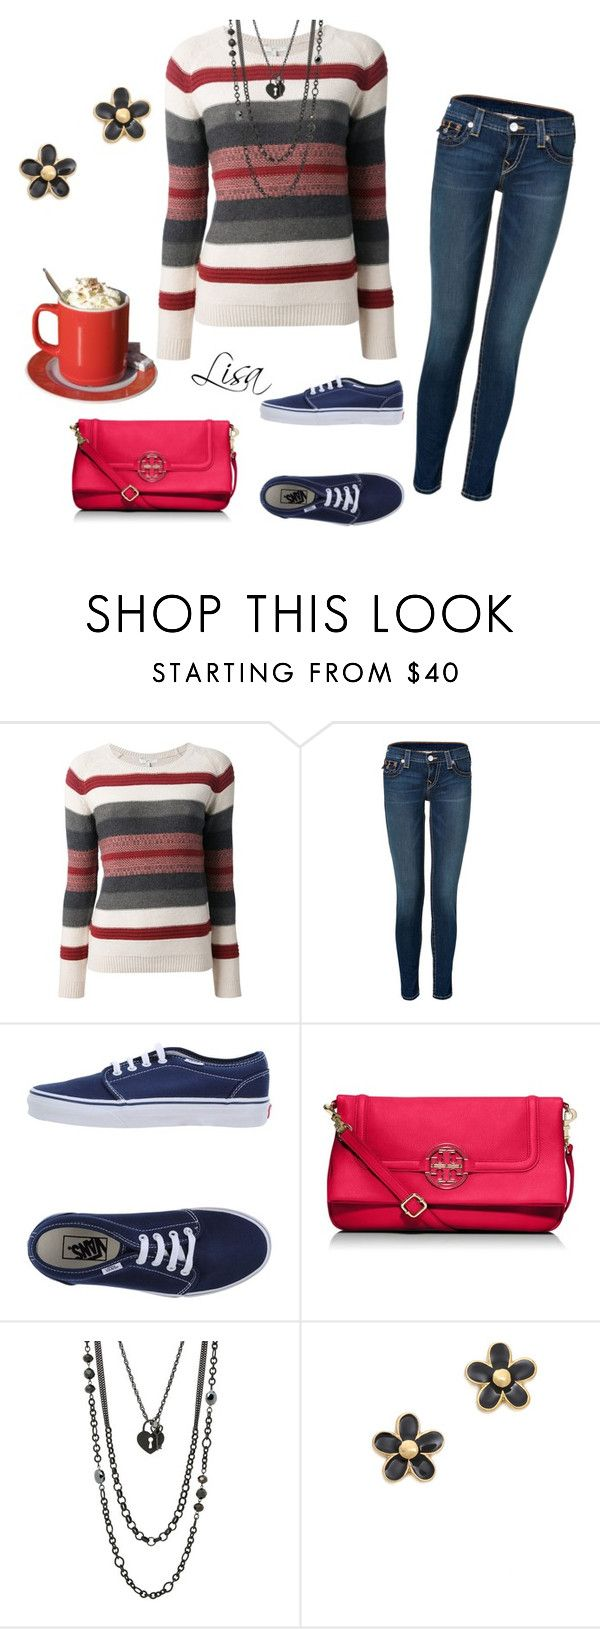 """""""Last day in February"""" by coolmommy44 ❤ liked on Polyvore featuring Joie, True Religion, Vans, Tory Burch, Lane Bryant and Marc by Marc Jacobs"""